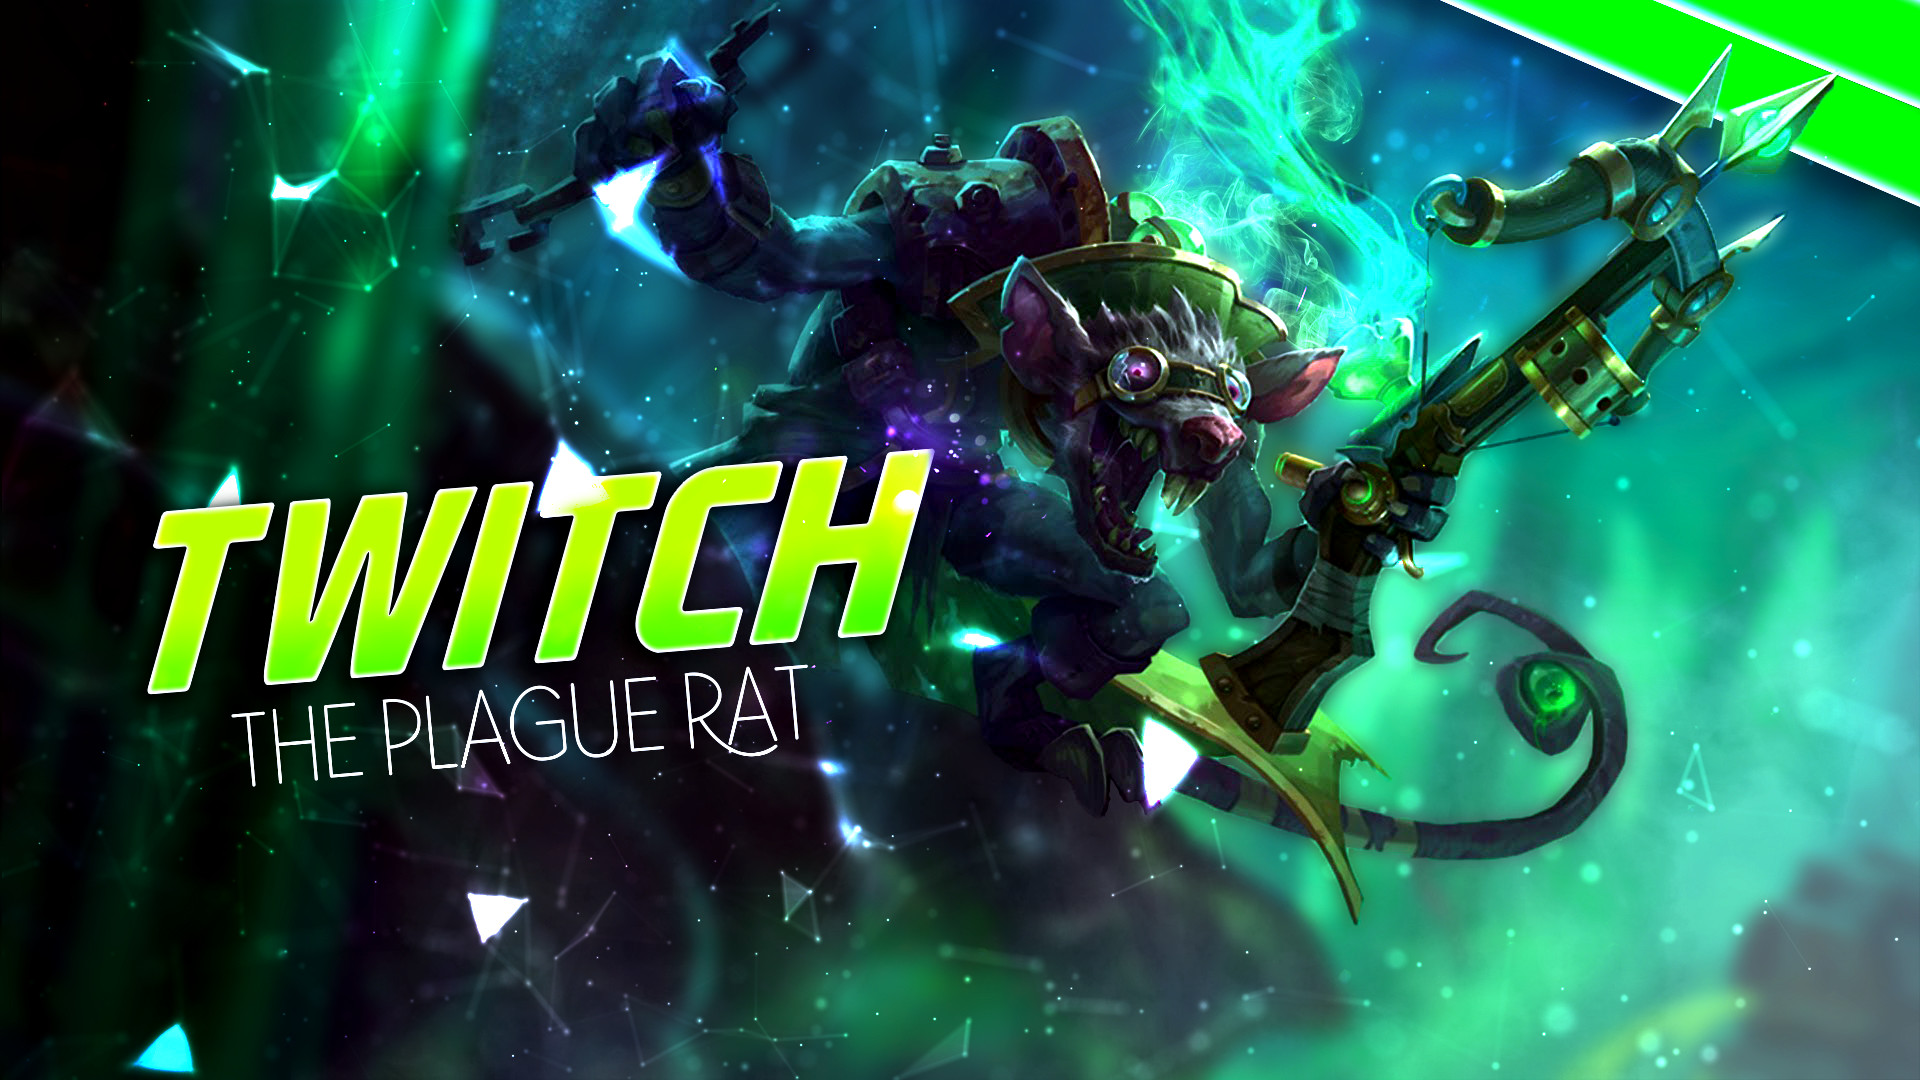 1920x1080 ... Twitch The Plague Rat wallpaper! by scuppypuppy